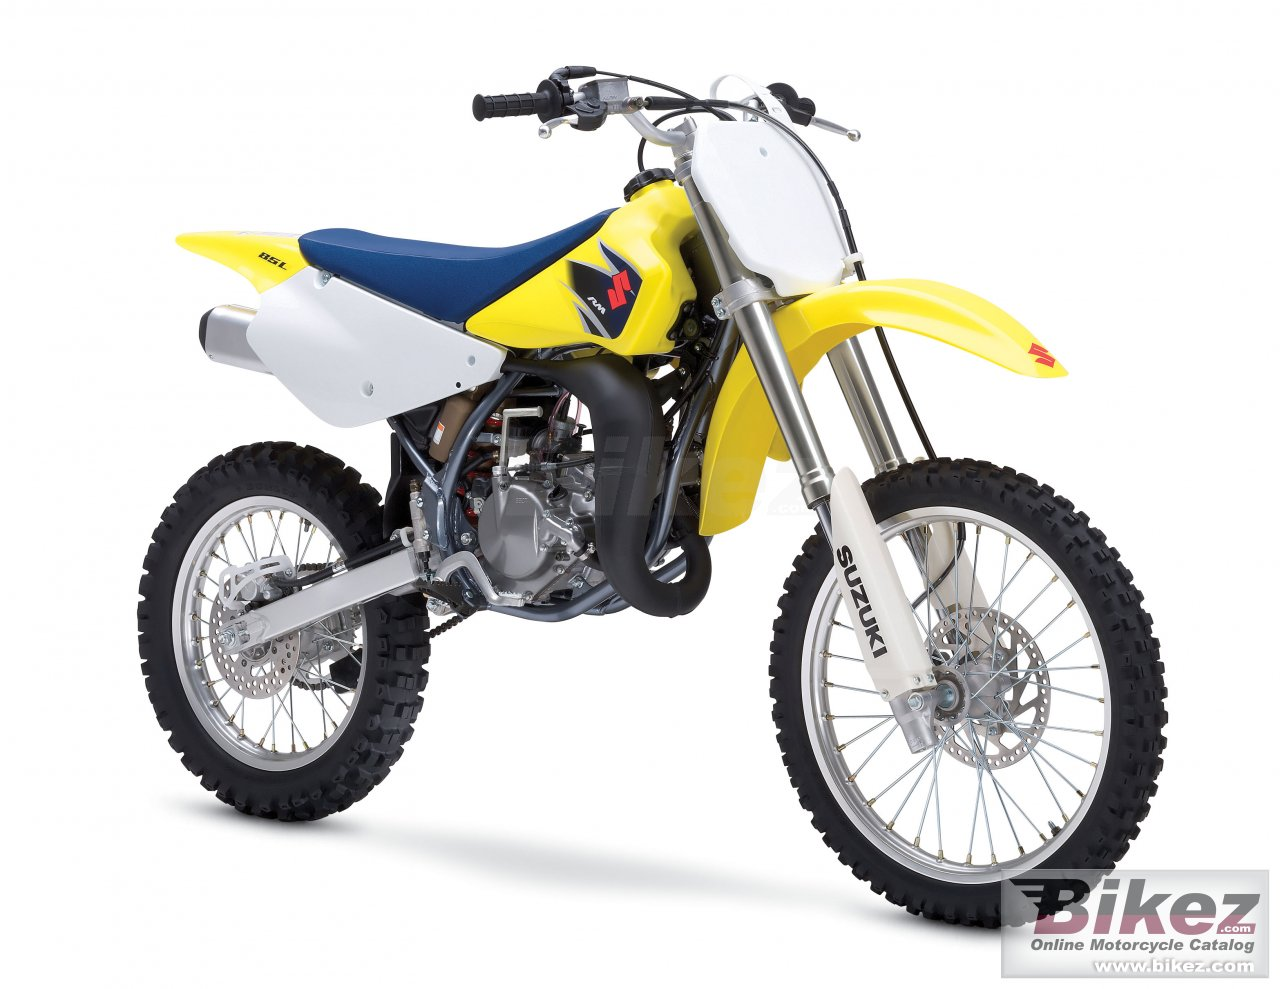 Big Suzuki rm 85 l picture and wallpaper from Bikez.com